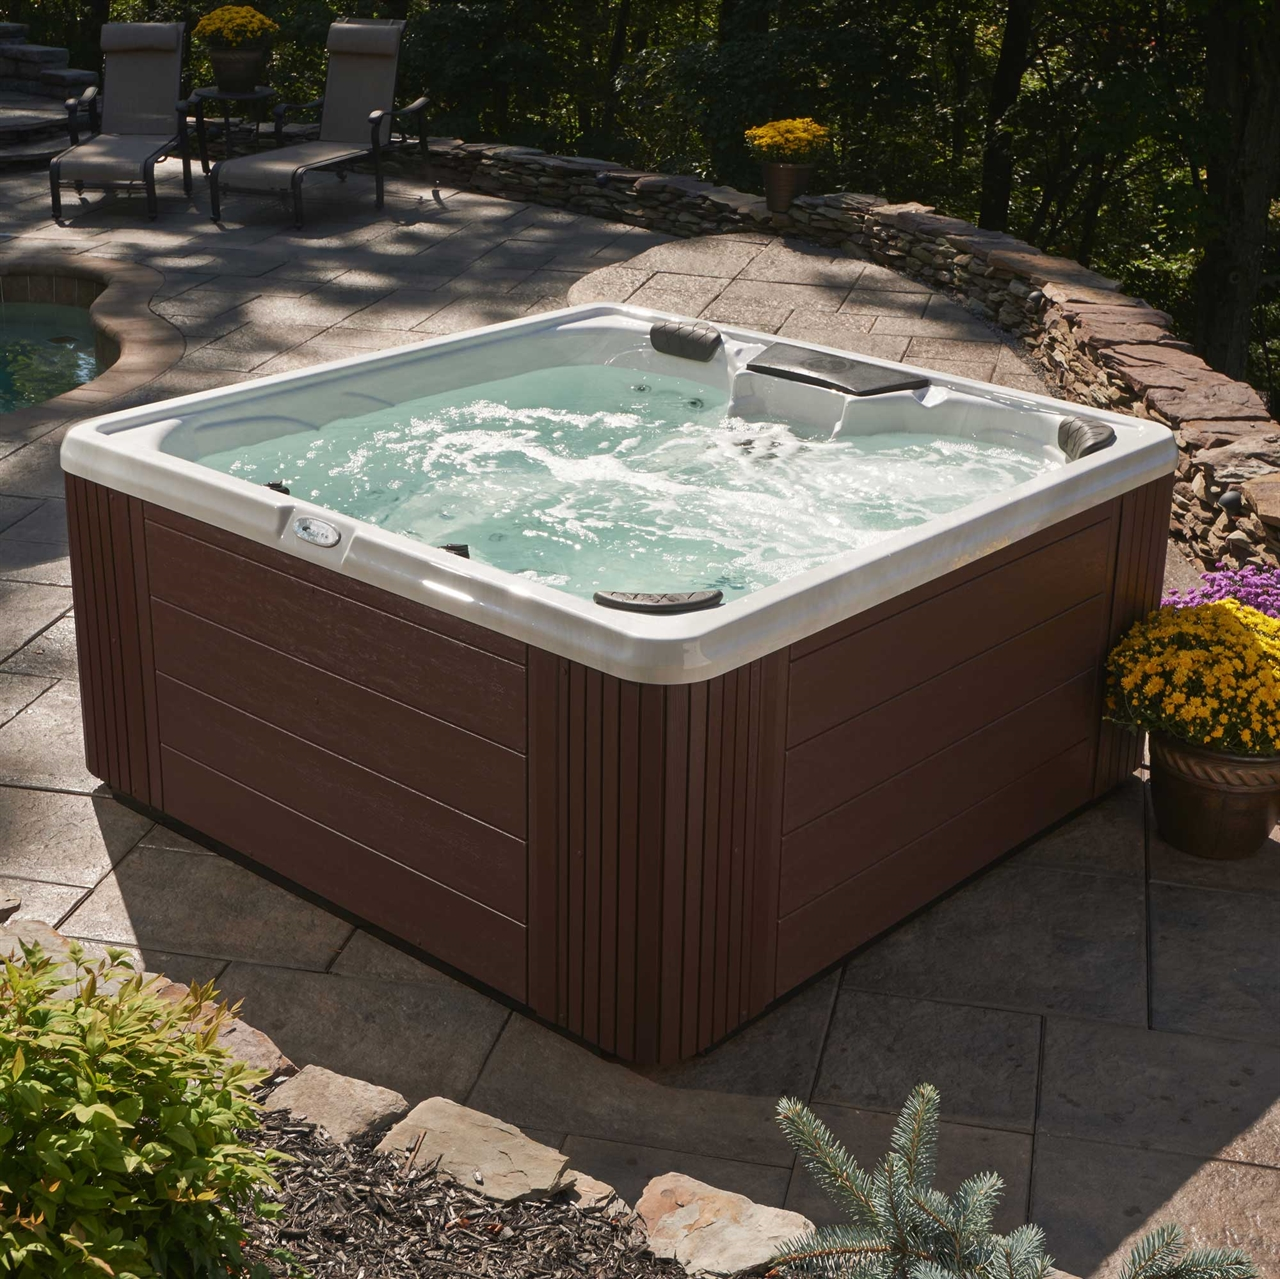 0004379-summit-s28-hot-tub-5-seats.jpg